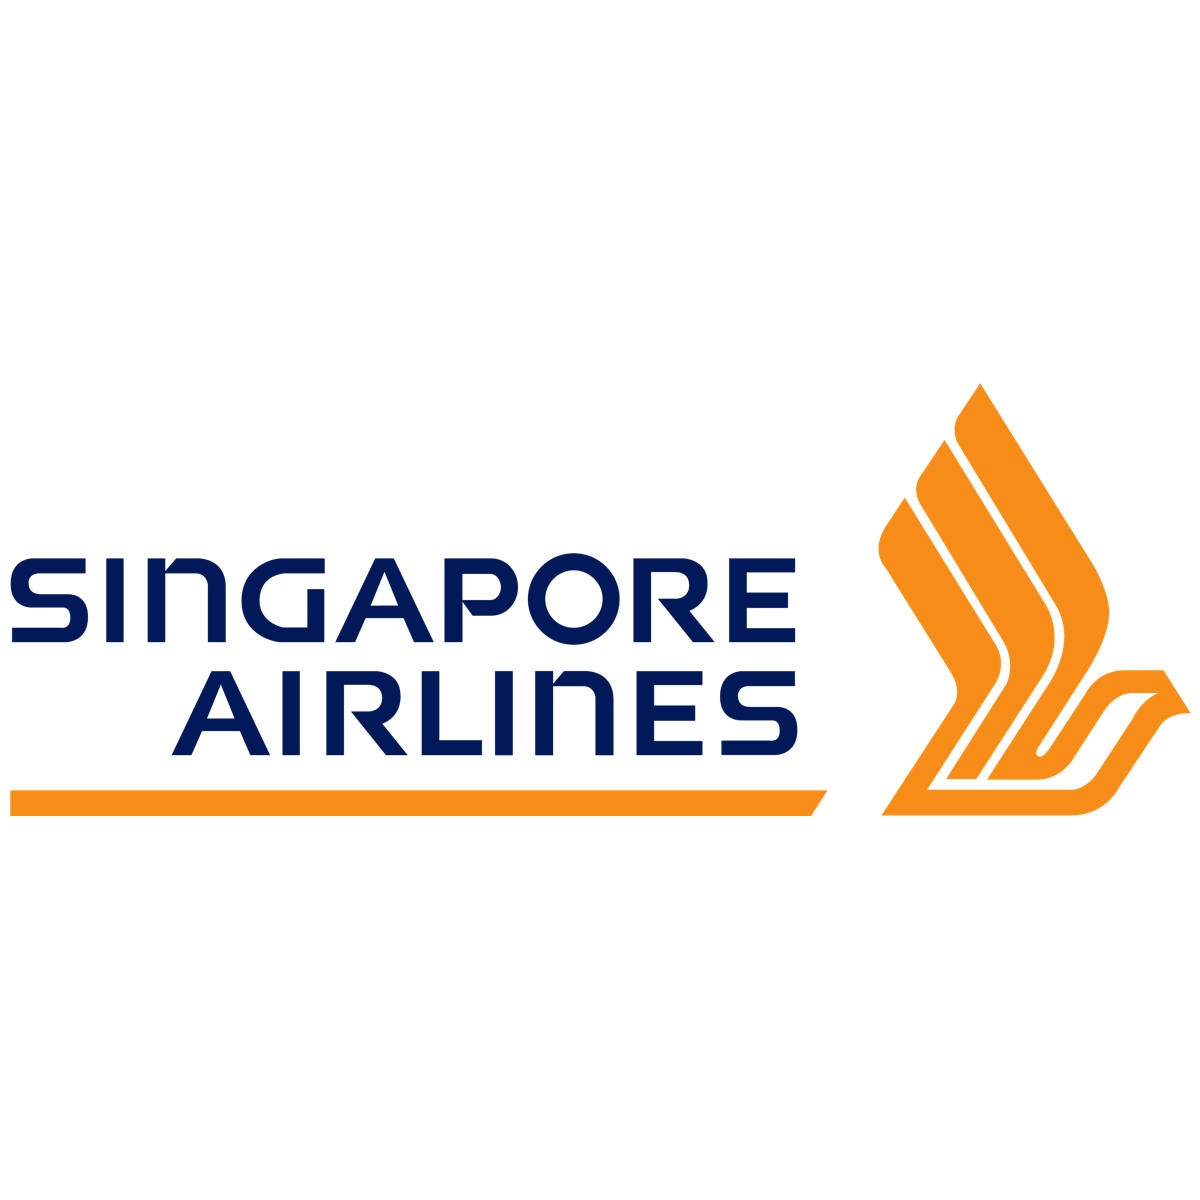 Singapore Airlines - OCBC Investment 2018-02-15: Less Turbulent Journey Ahead